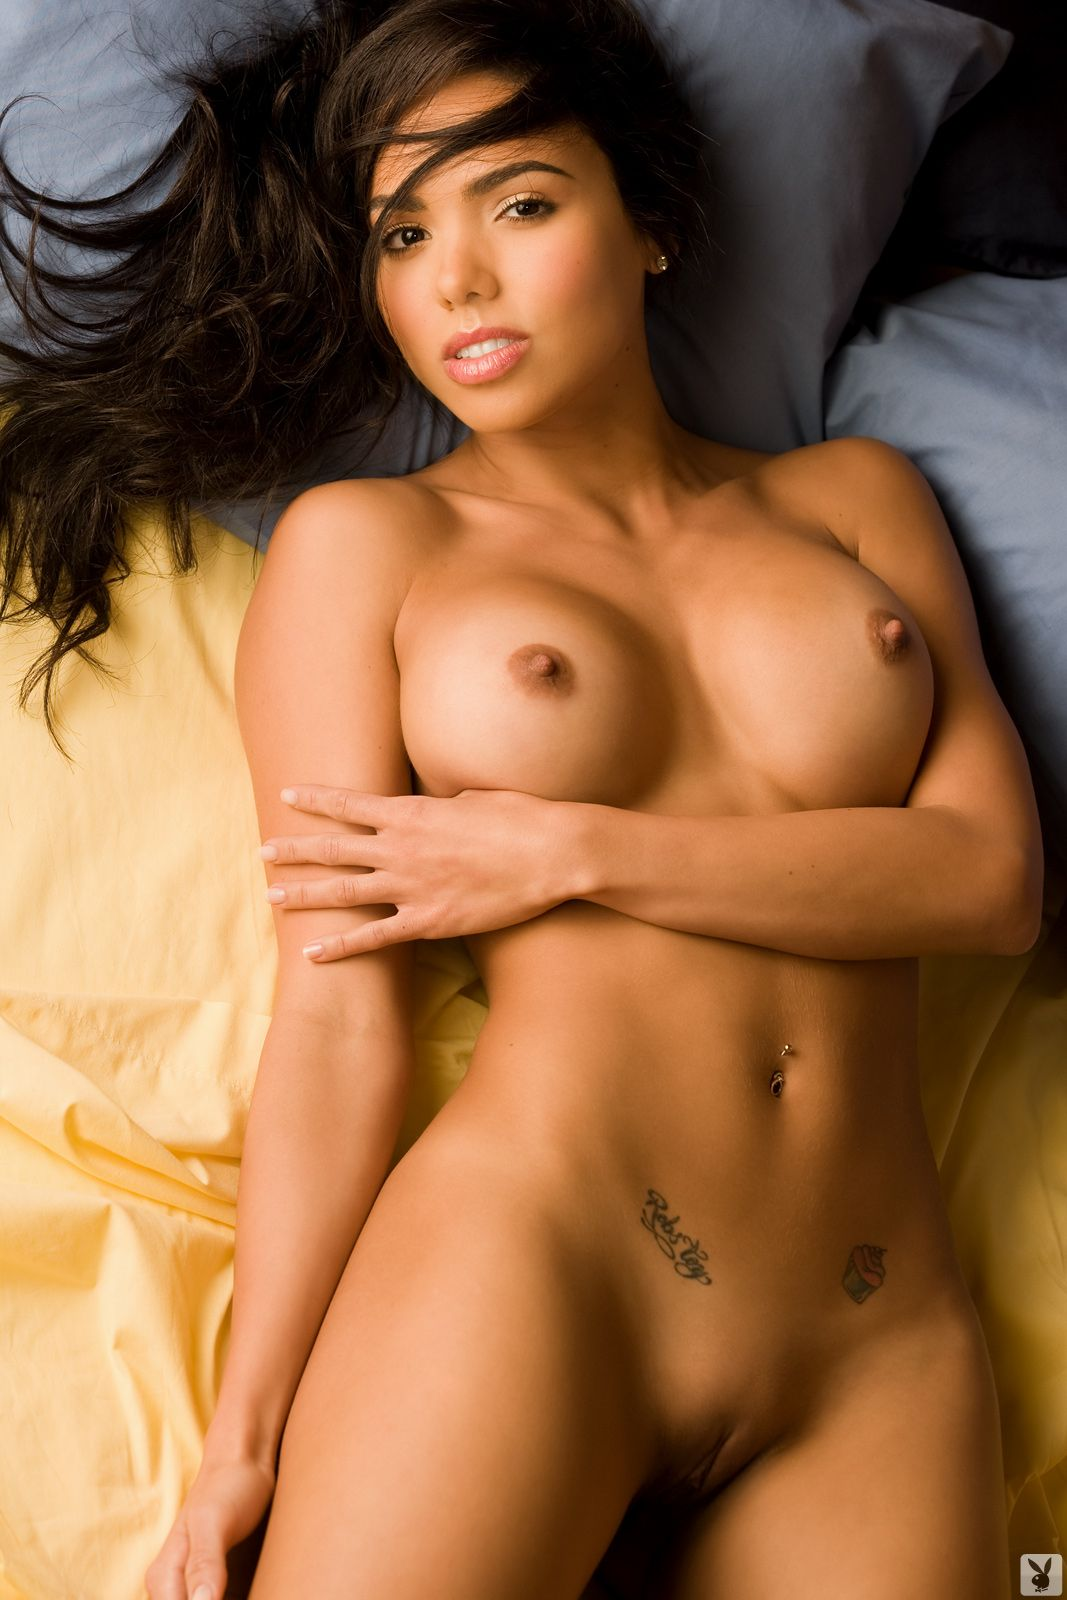 Alluring Smooth Pussy Young Latina Model Nude